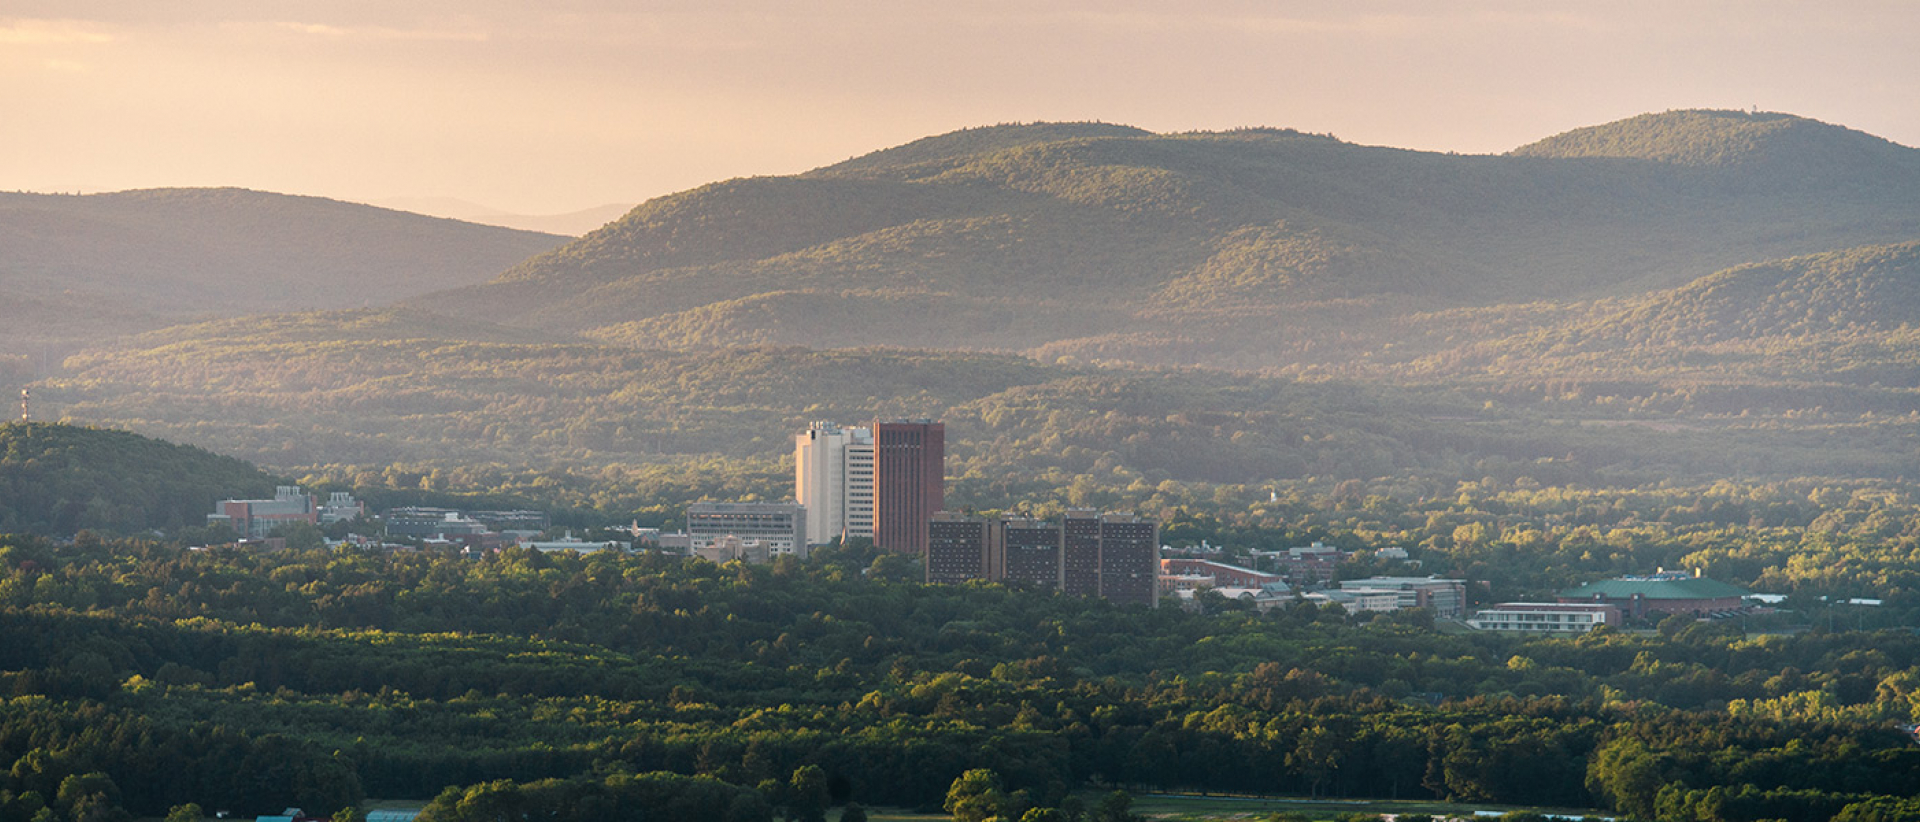 Distant view of UMass with mountains in the background